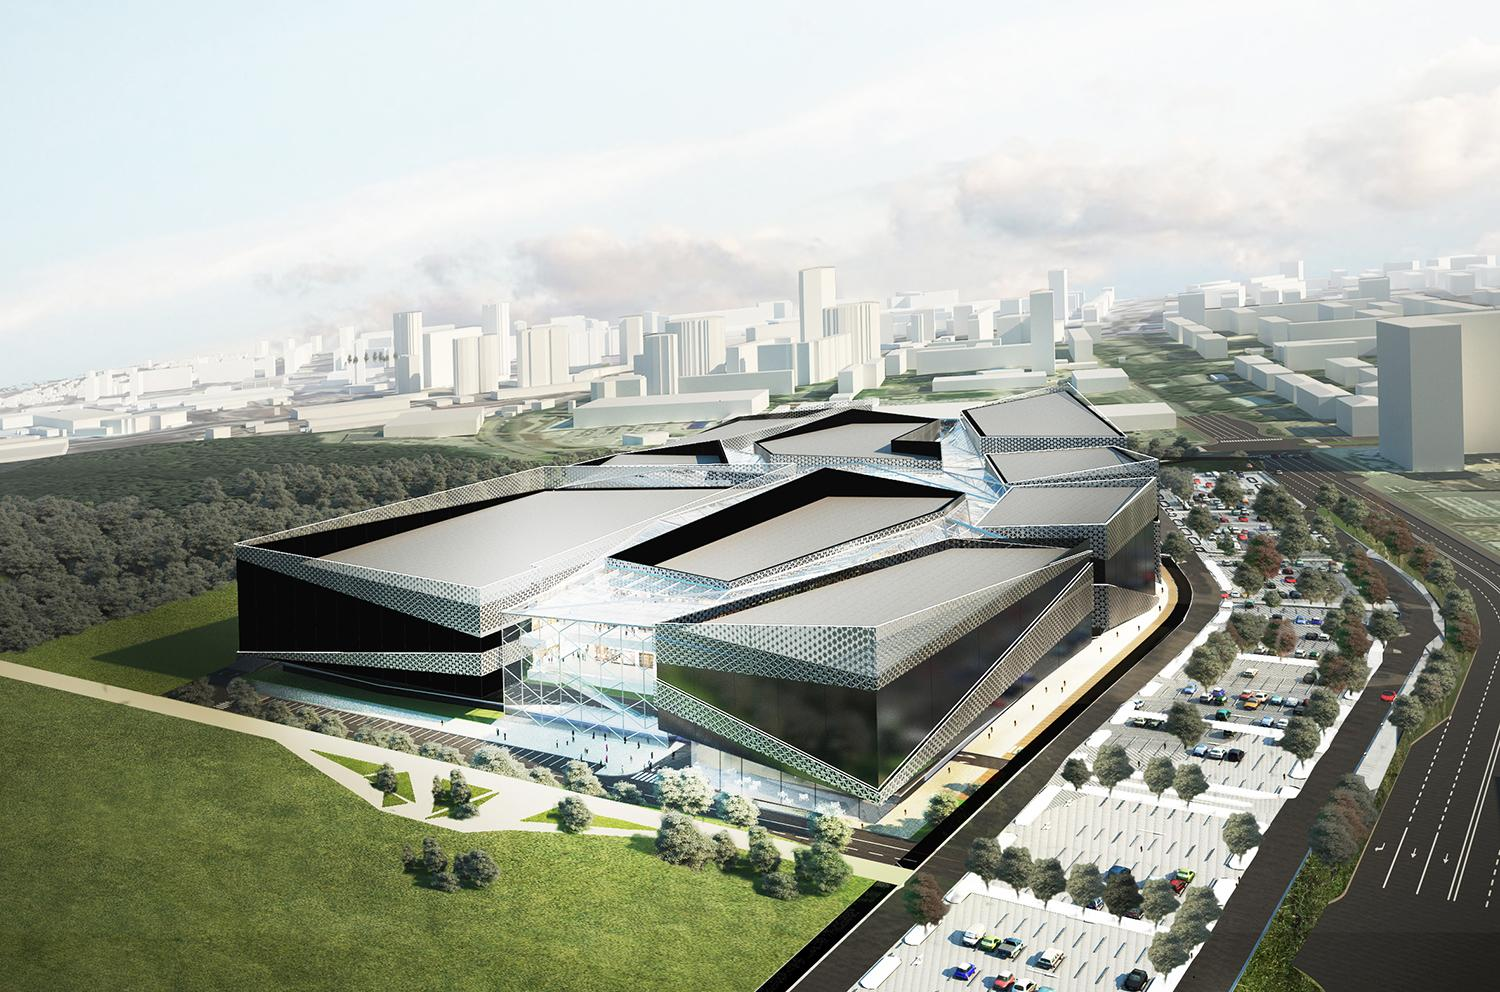 The 120,000sq m Cosmonavtov Mall will anchor the regeneration of the city's former industrial centre / Twelve Architecture